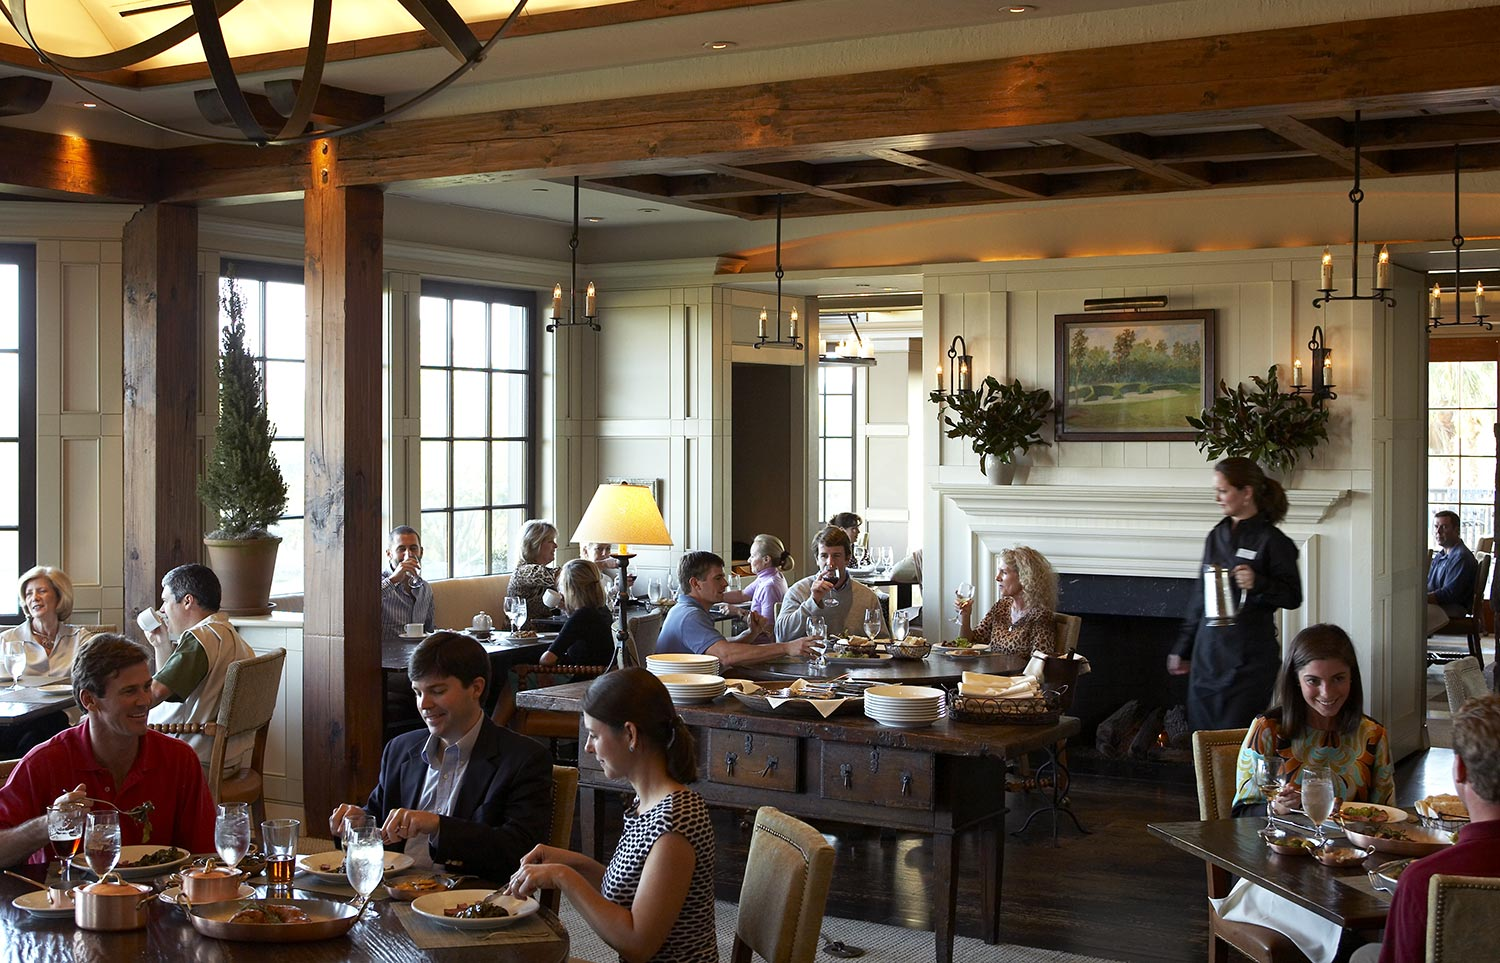 Cassique Clubhouse with a menu inspired by Kiawah Island Club consulting chef Tom Colicchio of BravoTV's Top Chef fame